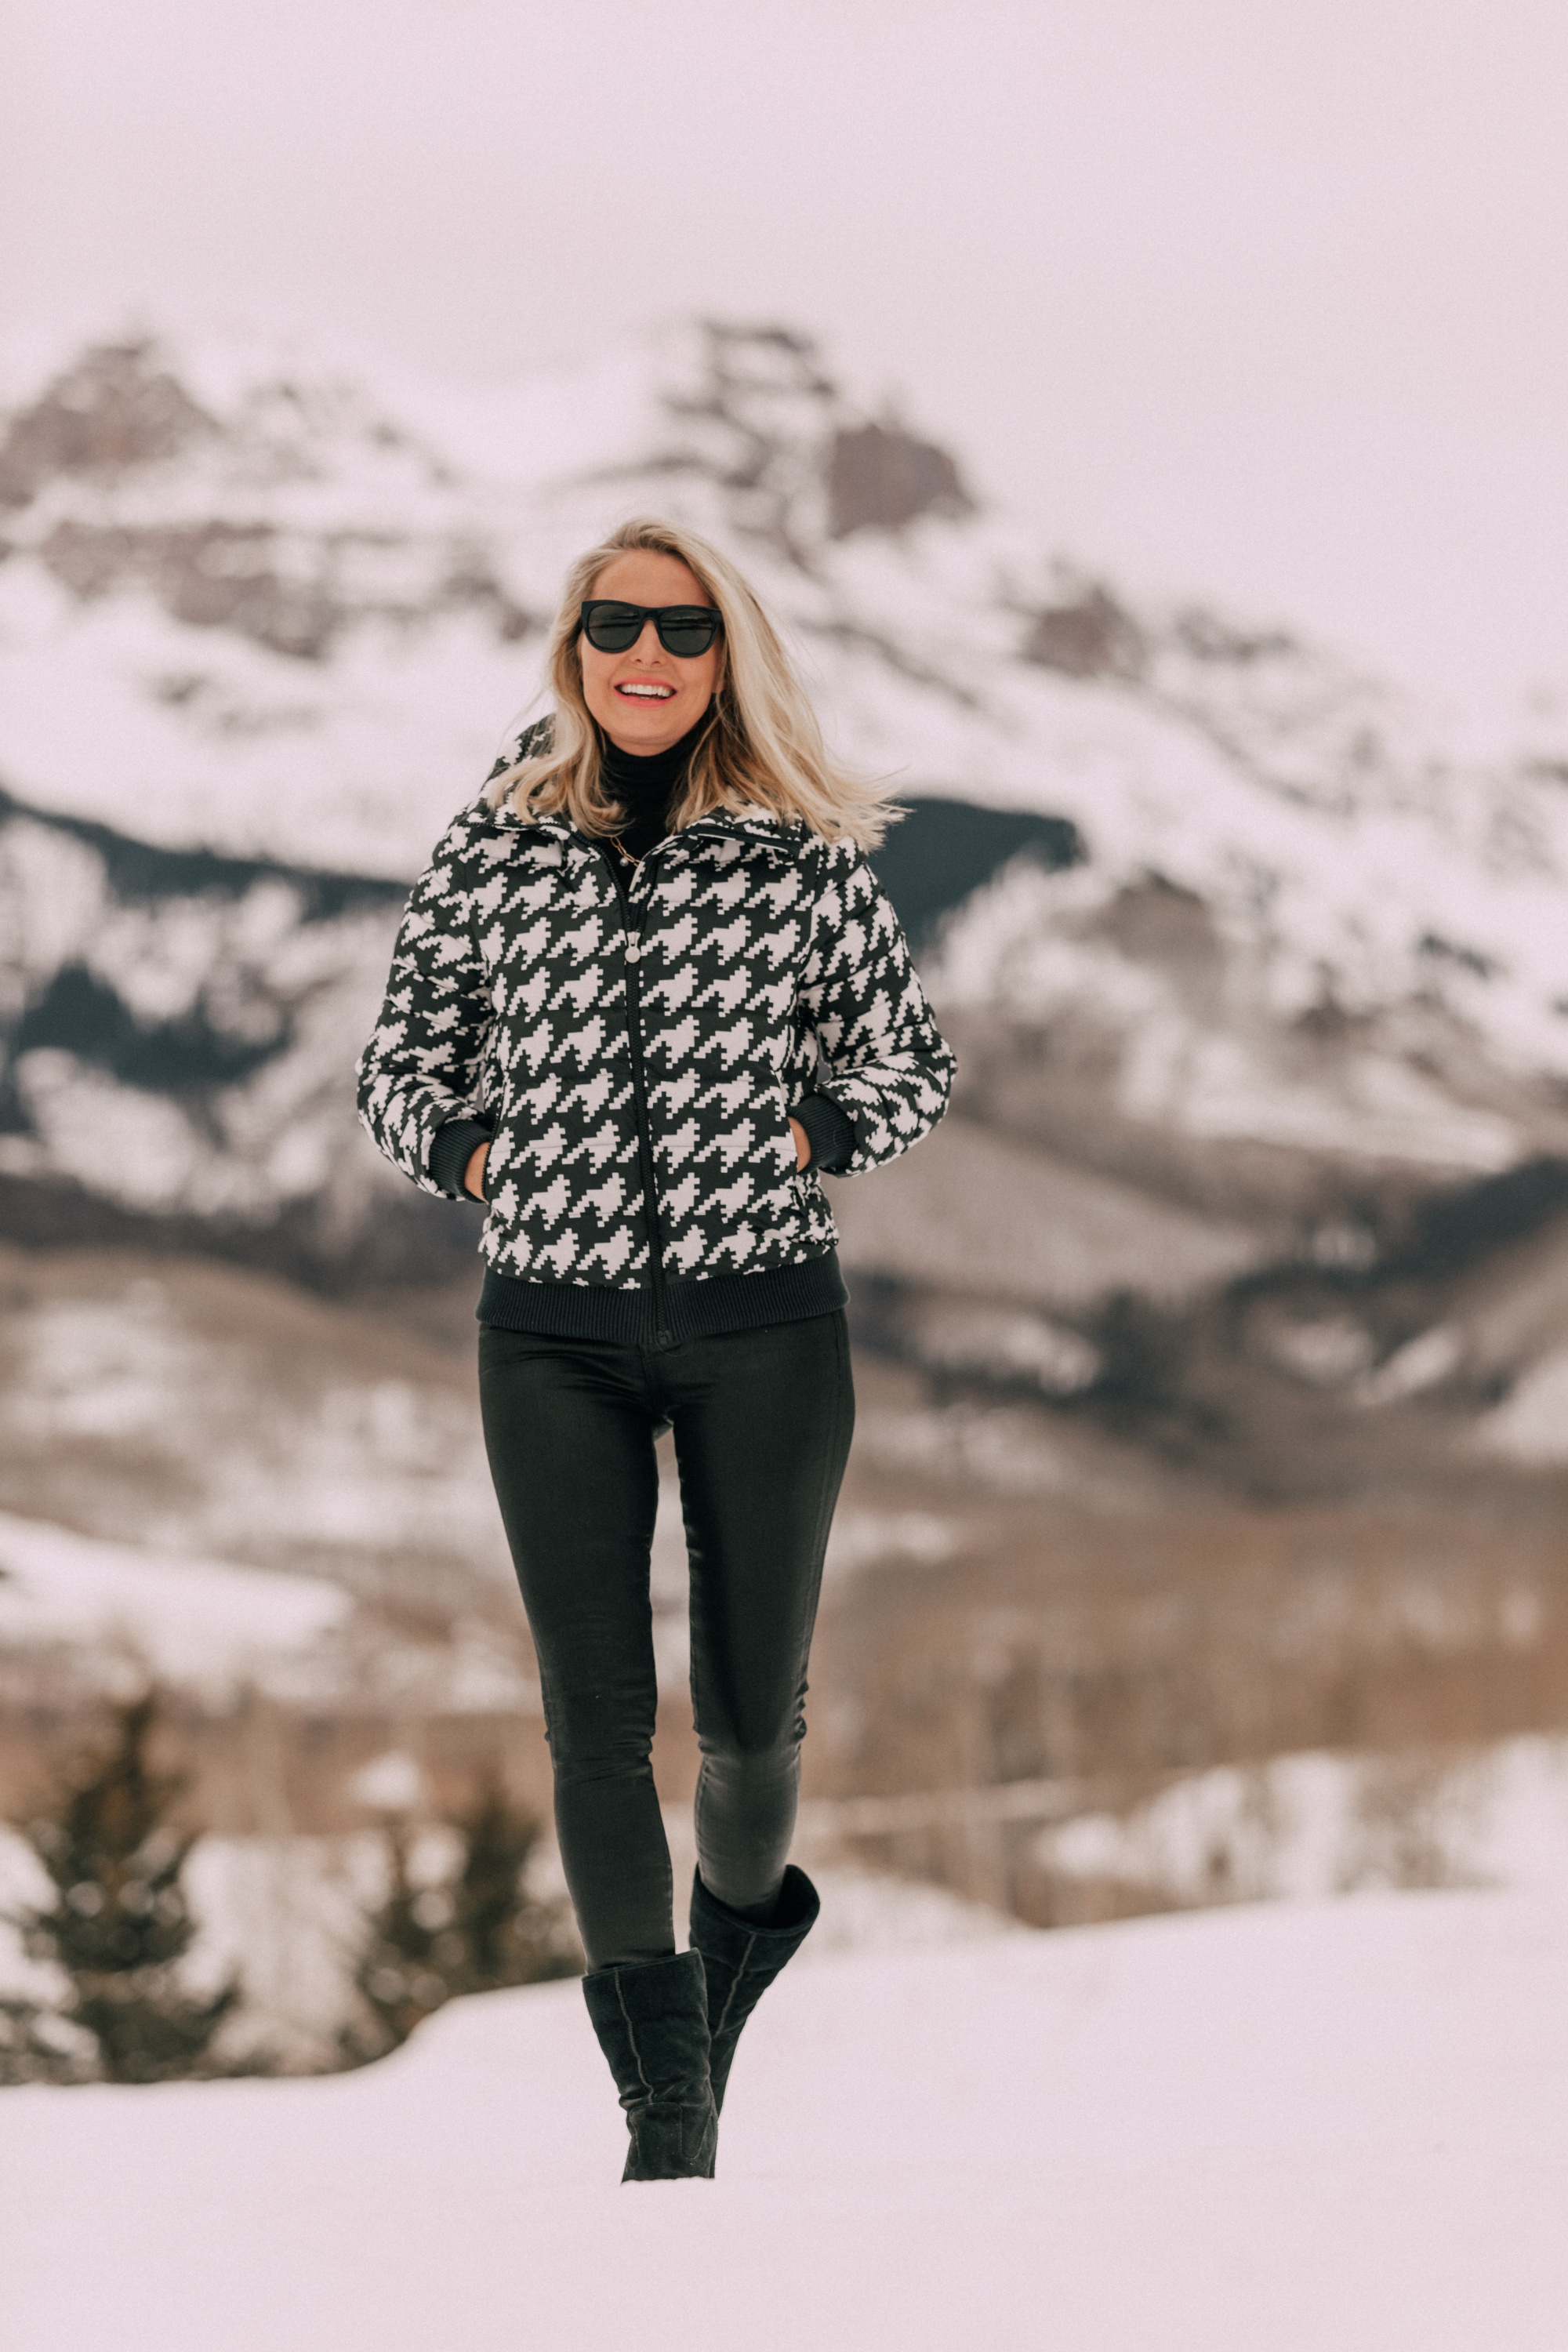 Chic Ski Brand, Fashion blogger Erin Busbee of BusbeeStyle.com wearing black Rocket leatherette Skinny Jeans by Citizens of Humanity with a black cashmere turtleneck sweater by Aqua, and a houndstooth puffer jacket by Perfect Moment from Shopbop, and Ugg wedge boots in the snow in Telluride, CO